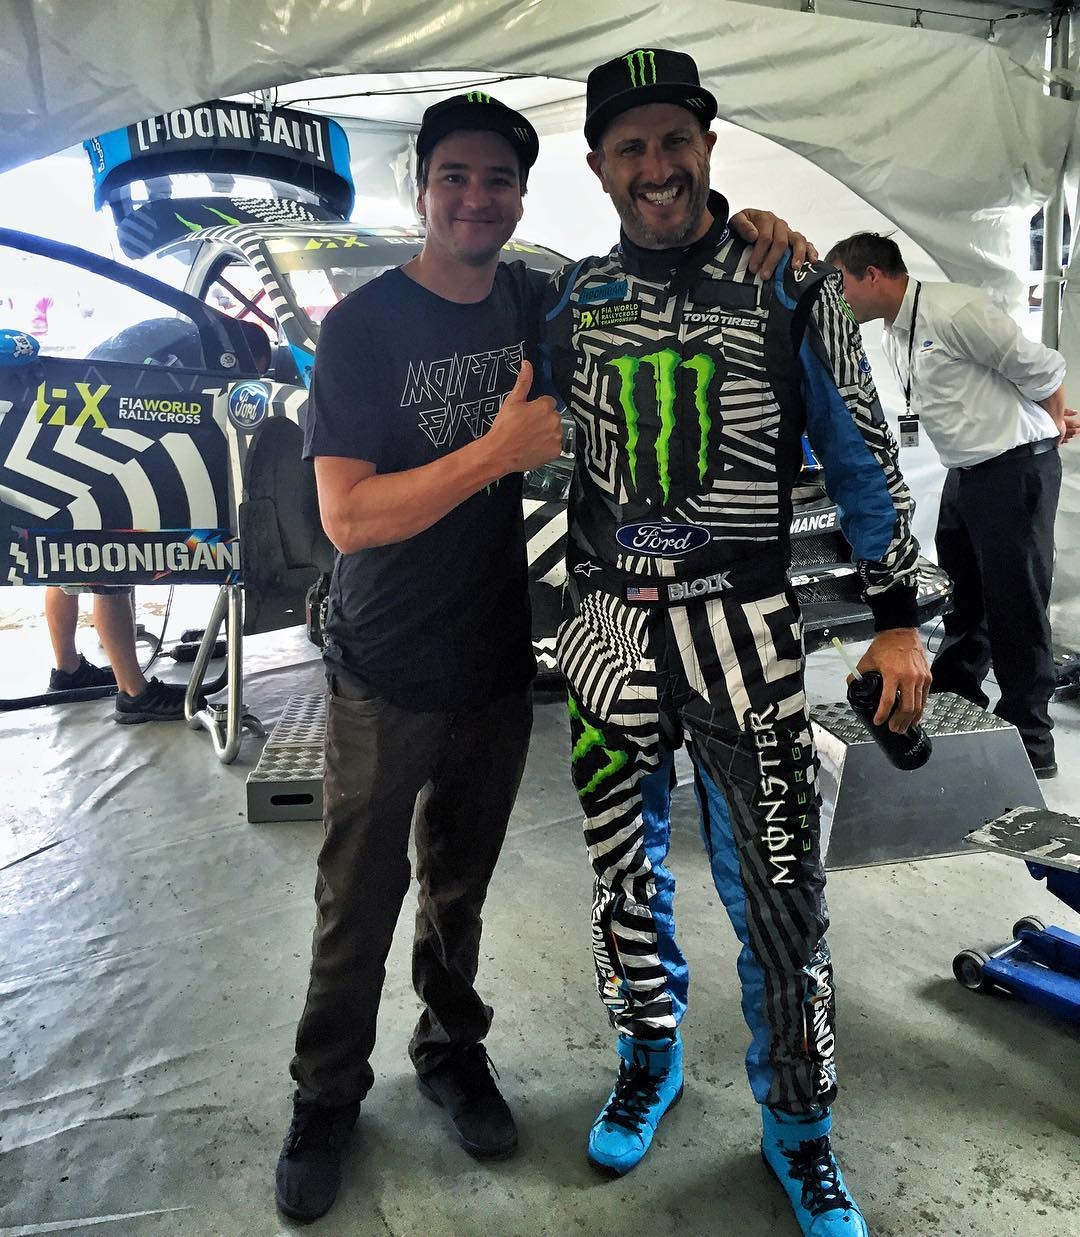 "Look who showed up to #CanadaRX: fellow @MonsterEnergy athlete Blake ""Bilko"" Williams! @BilkoFMX had a Nitro Circus event here in Canada last night, so he popped in to check out the @FiaWorldRX racing today. Always good to see this dude around!..."